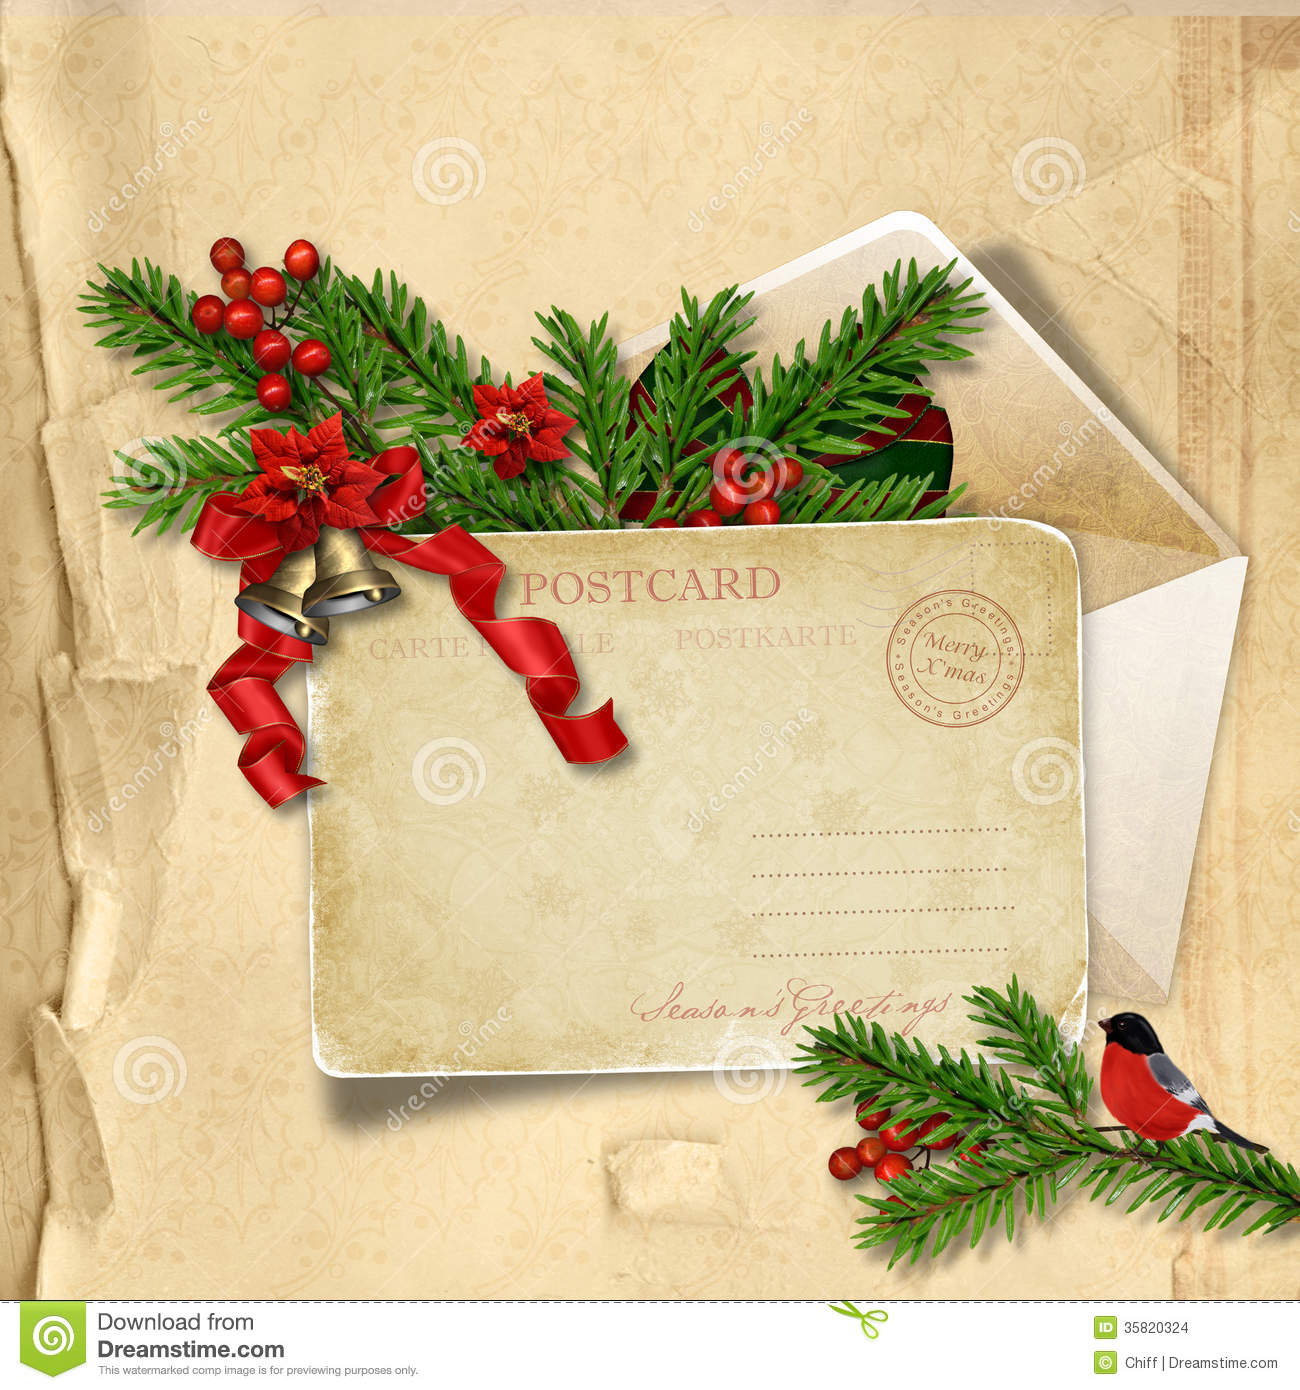 Vintage Christmas Postcard On Paper Background With Holly